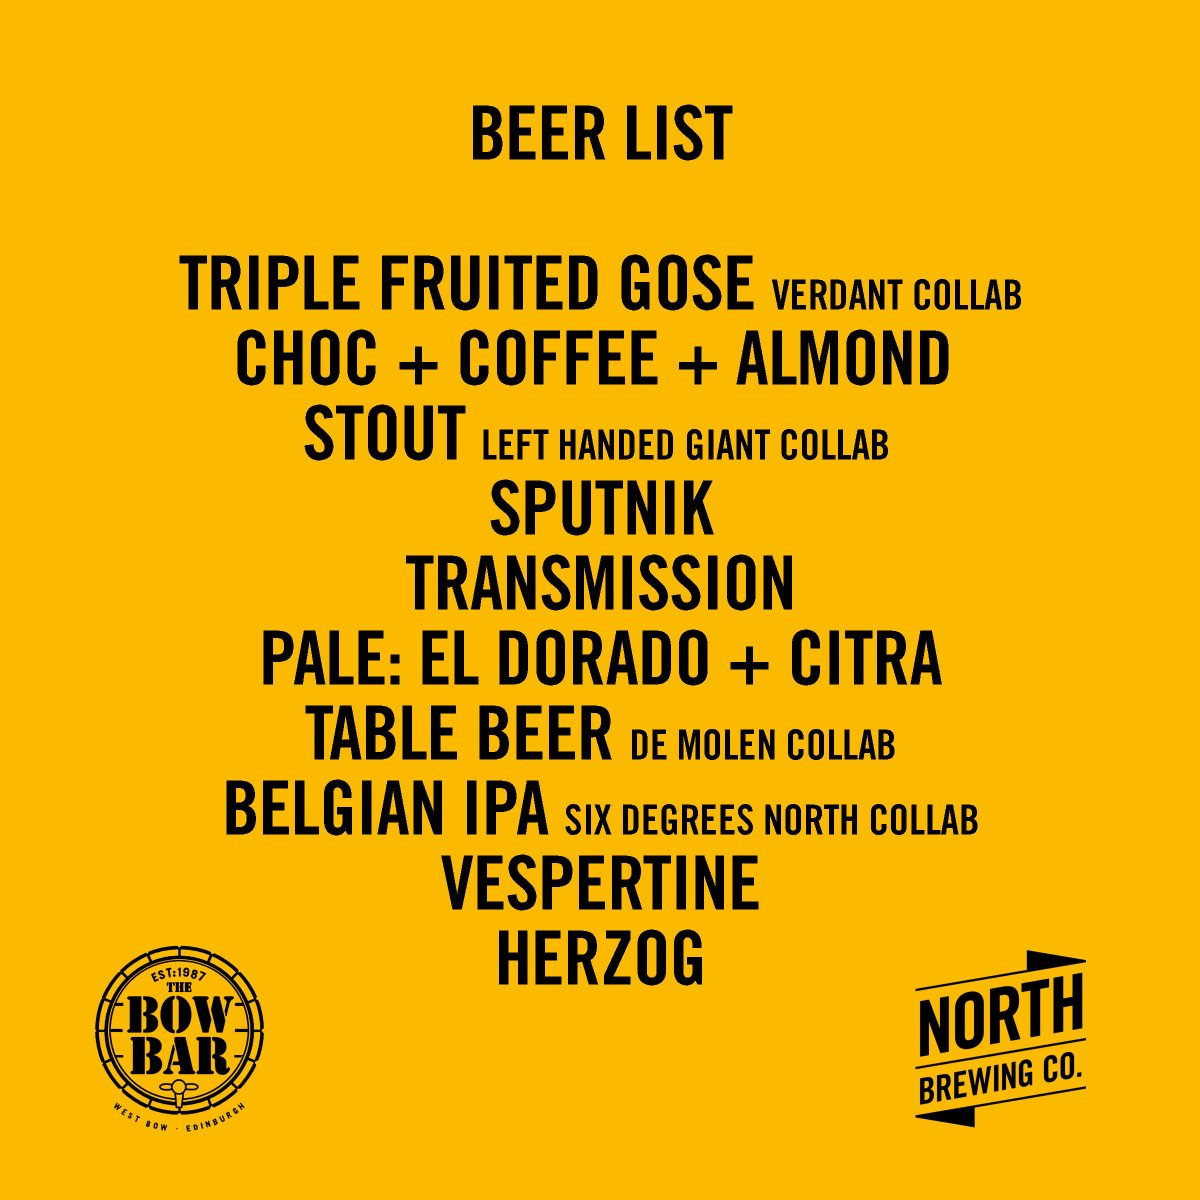 North Brewing Co on Twitter: